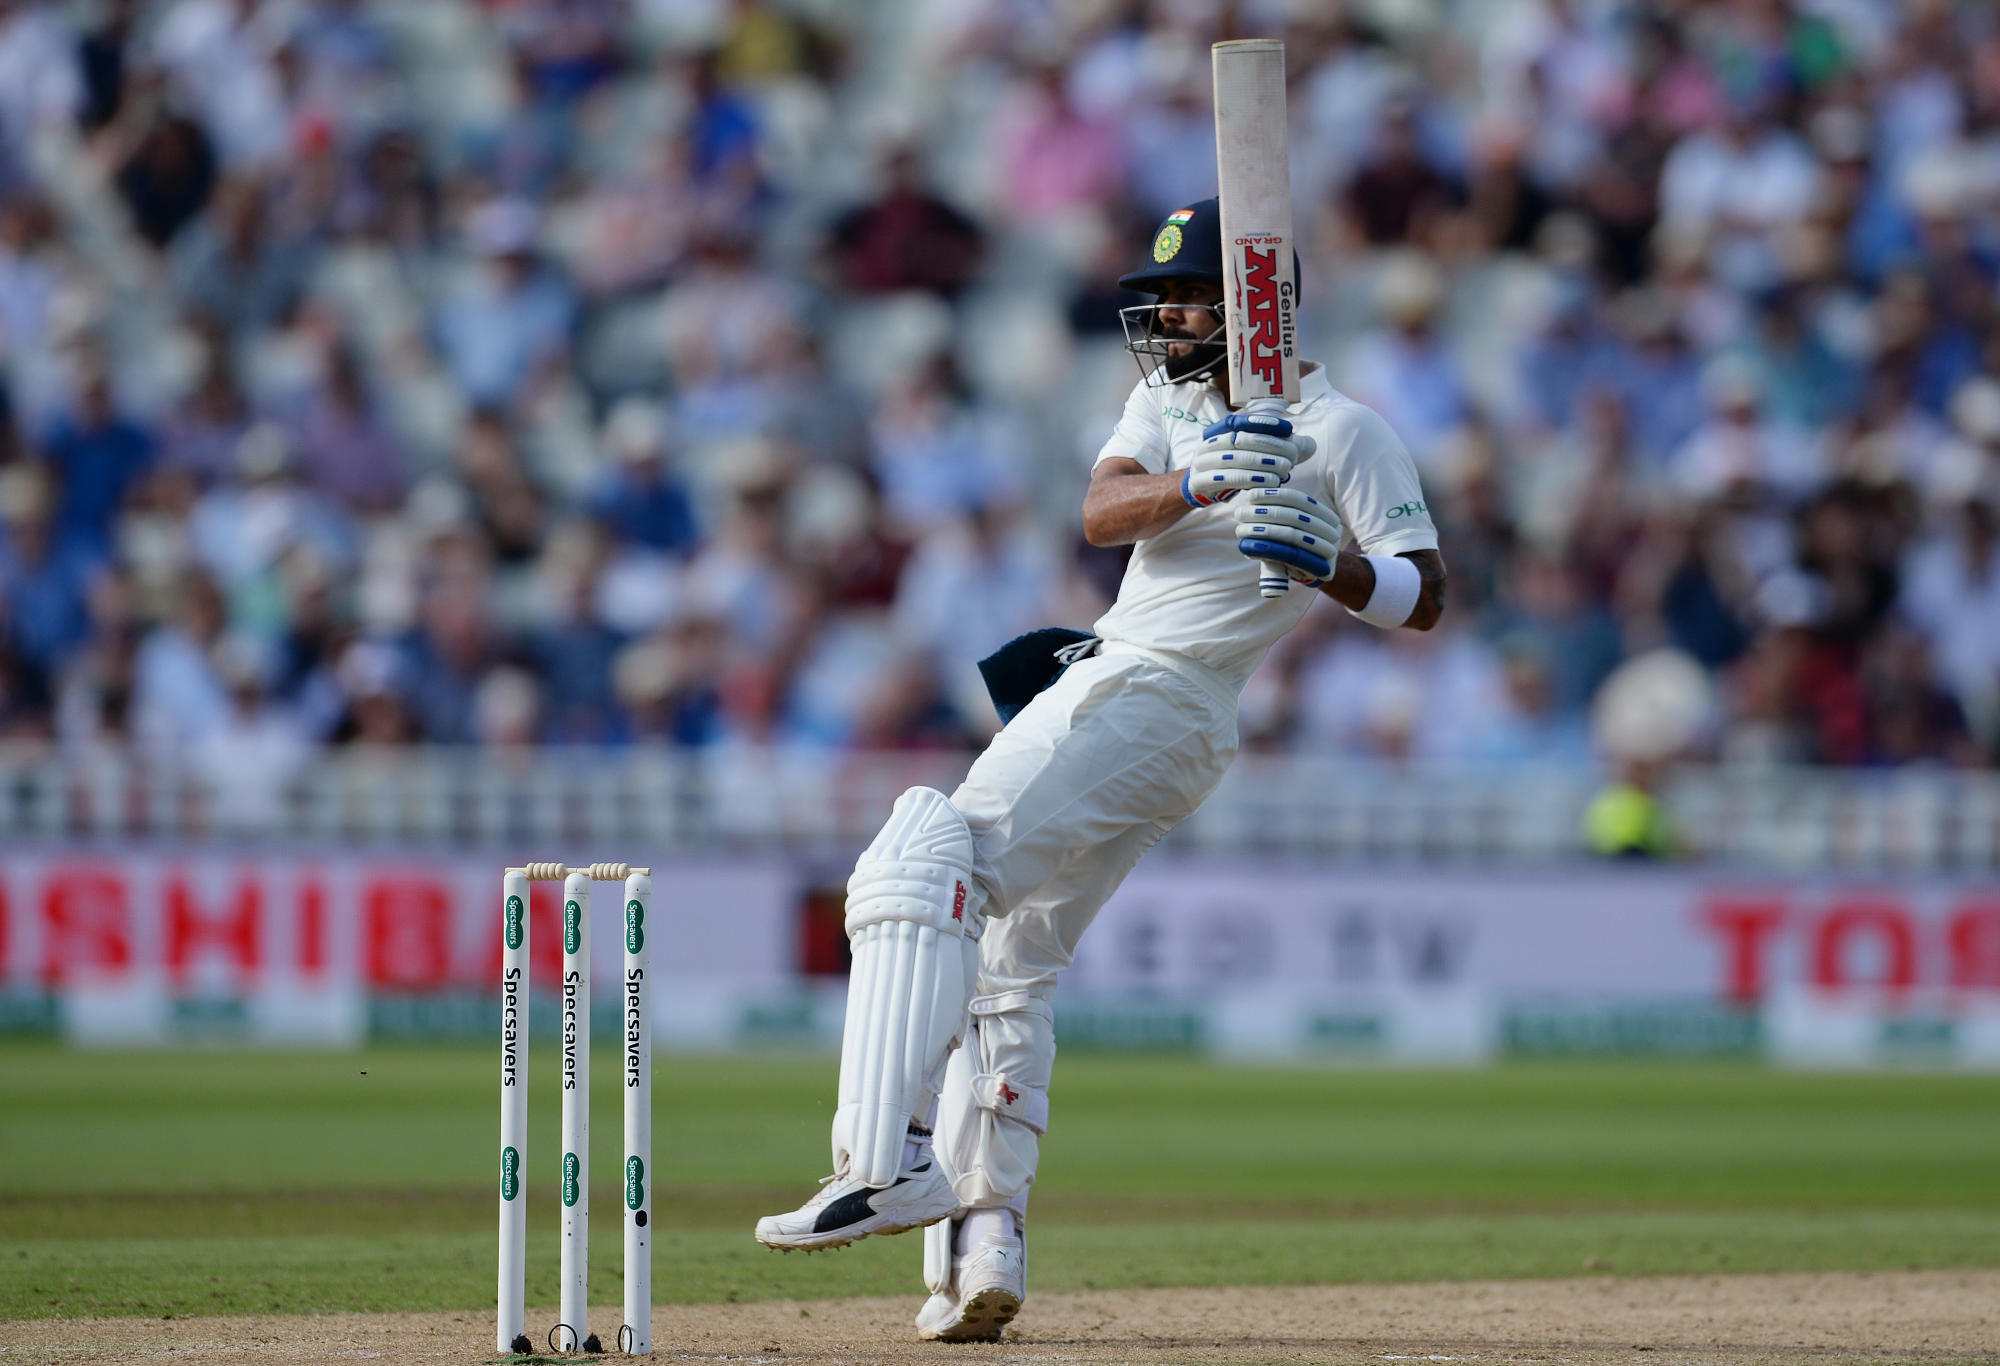 Virat Kohli batting at Birmingam.